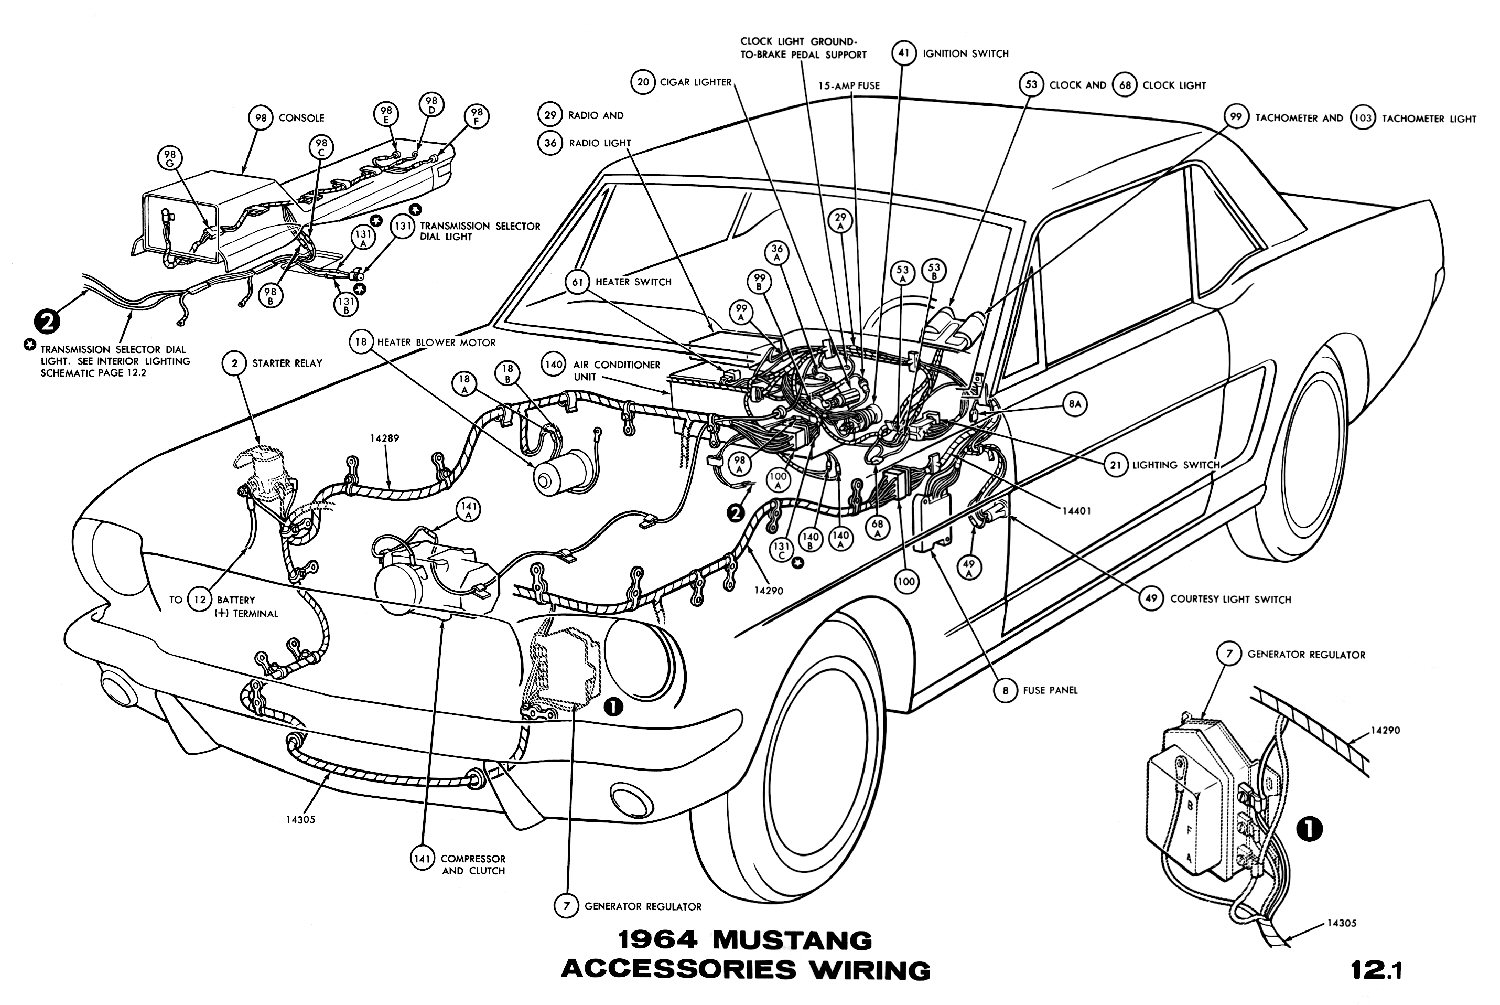 Wiring Diagram Schematics For 1965 Ford Fairlane